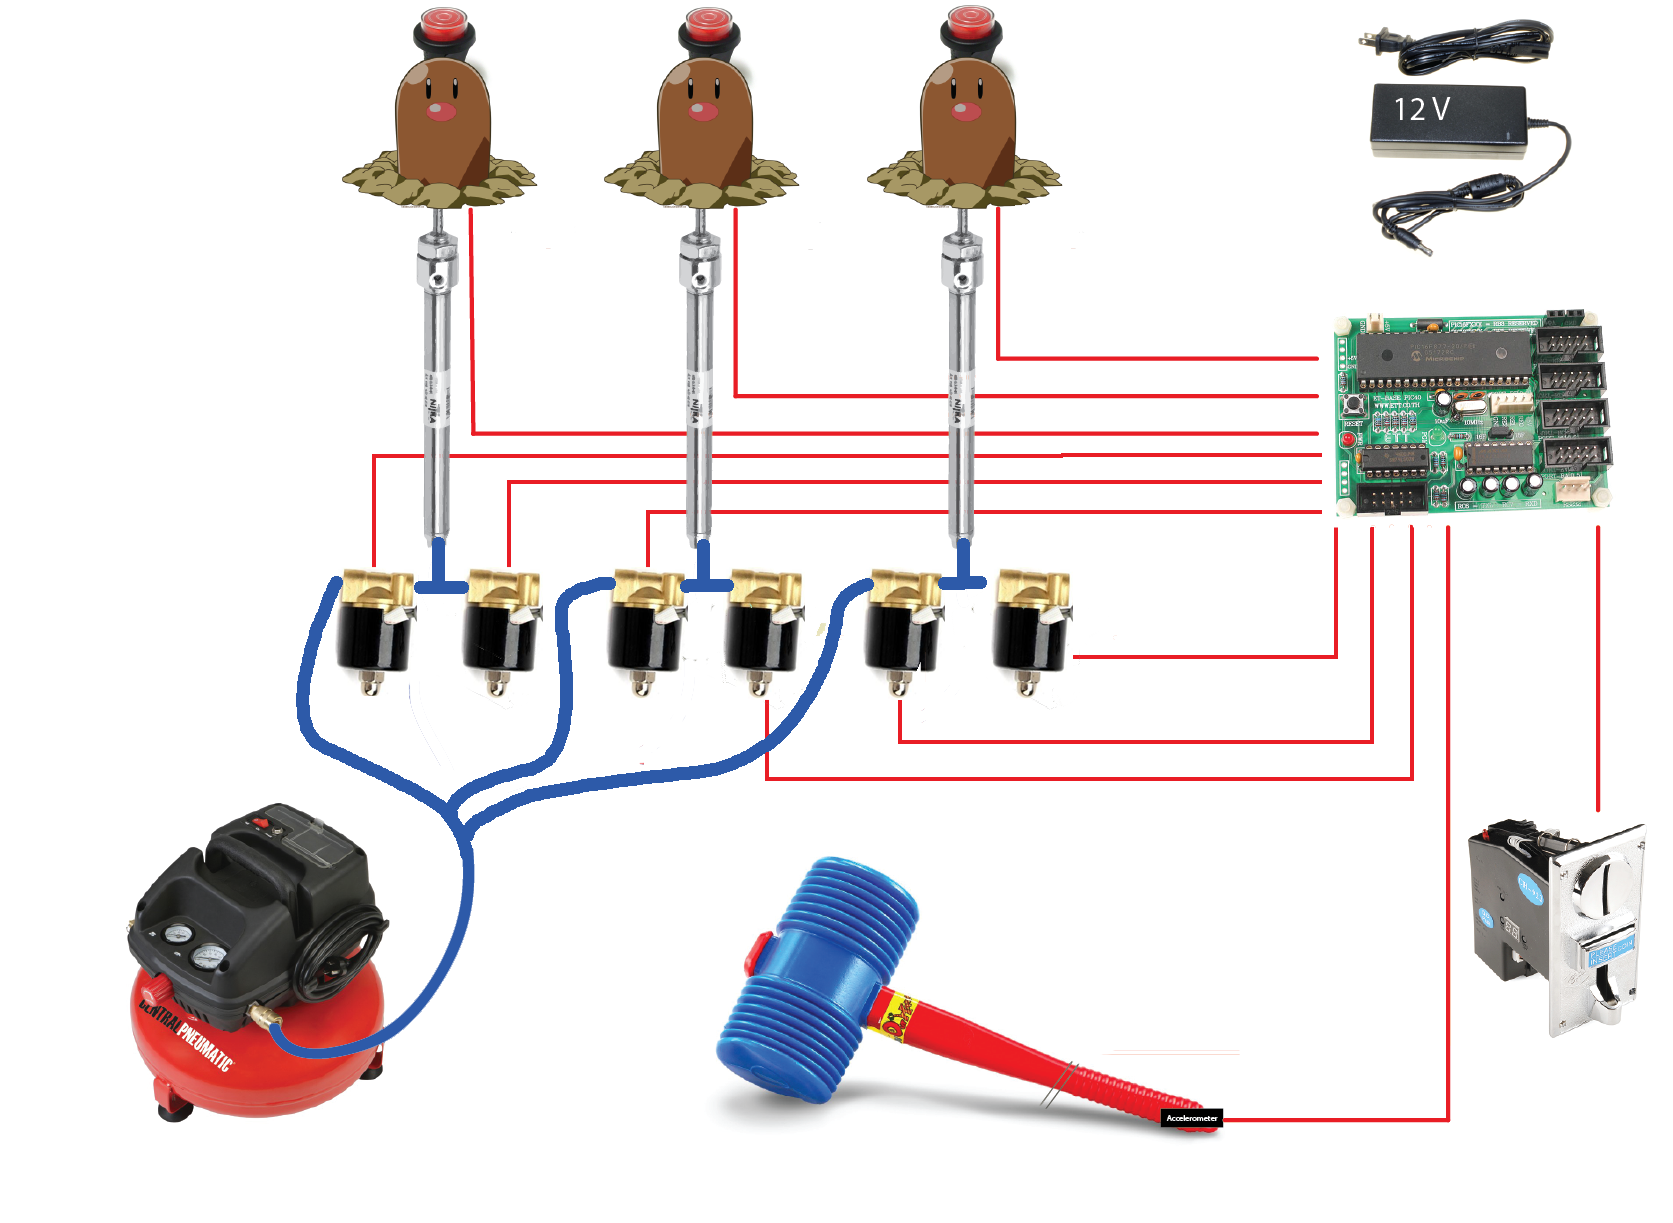 Wack A Mole Olin Elecanisms 2015 12 Volt Actuator Wiring Diagram Schematic Our System